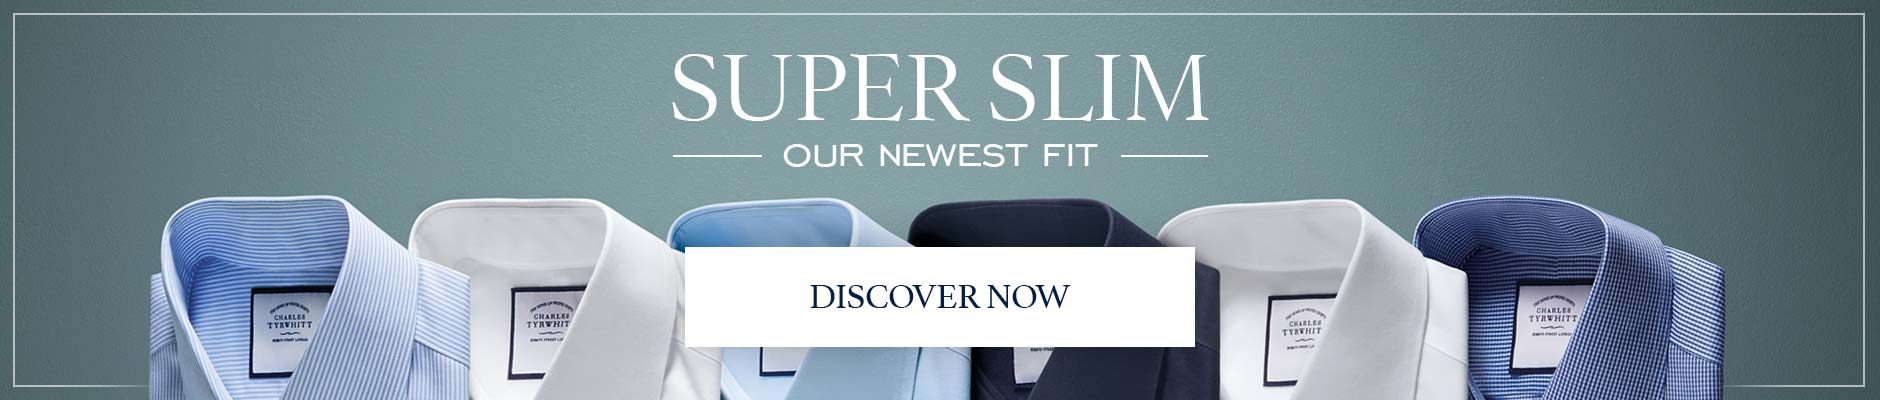 Super slim - discover now